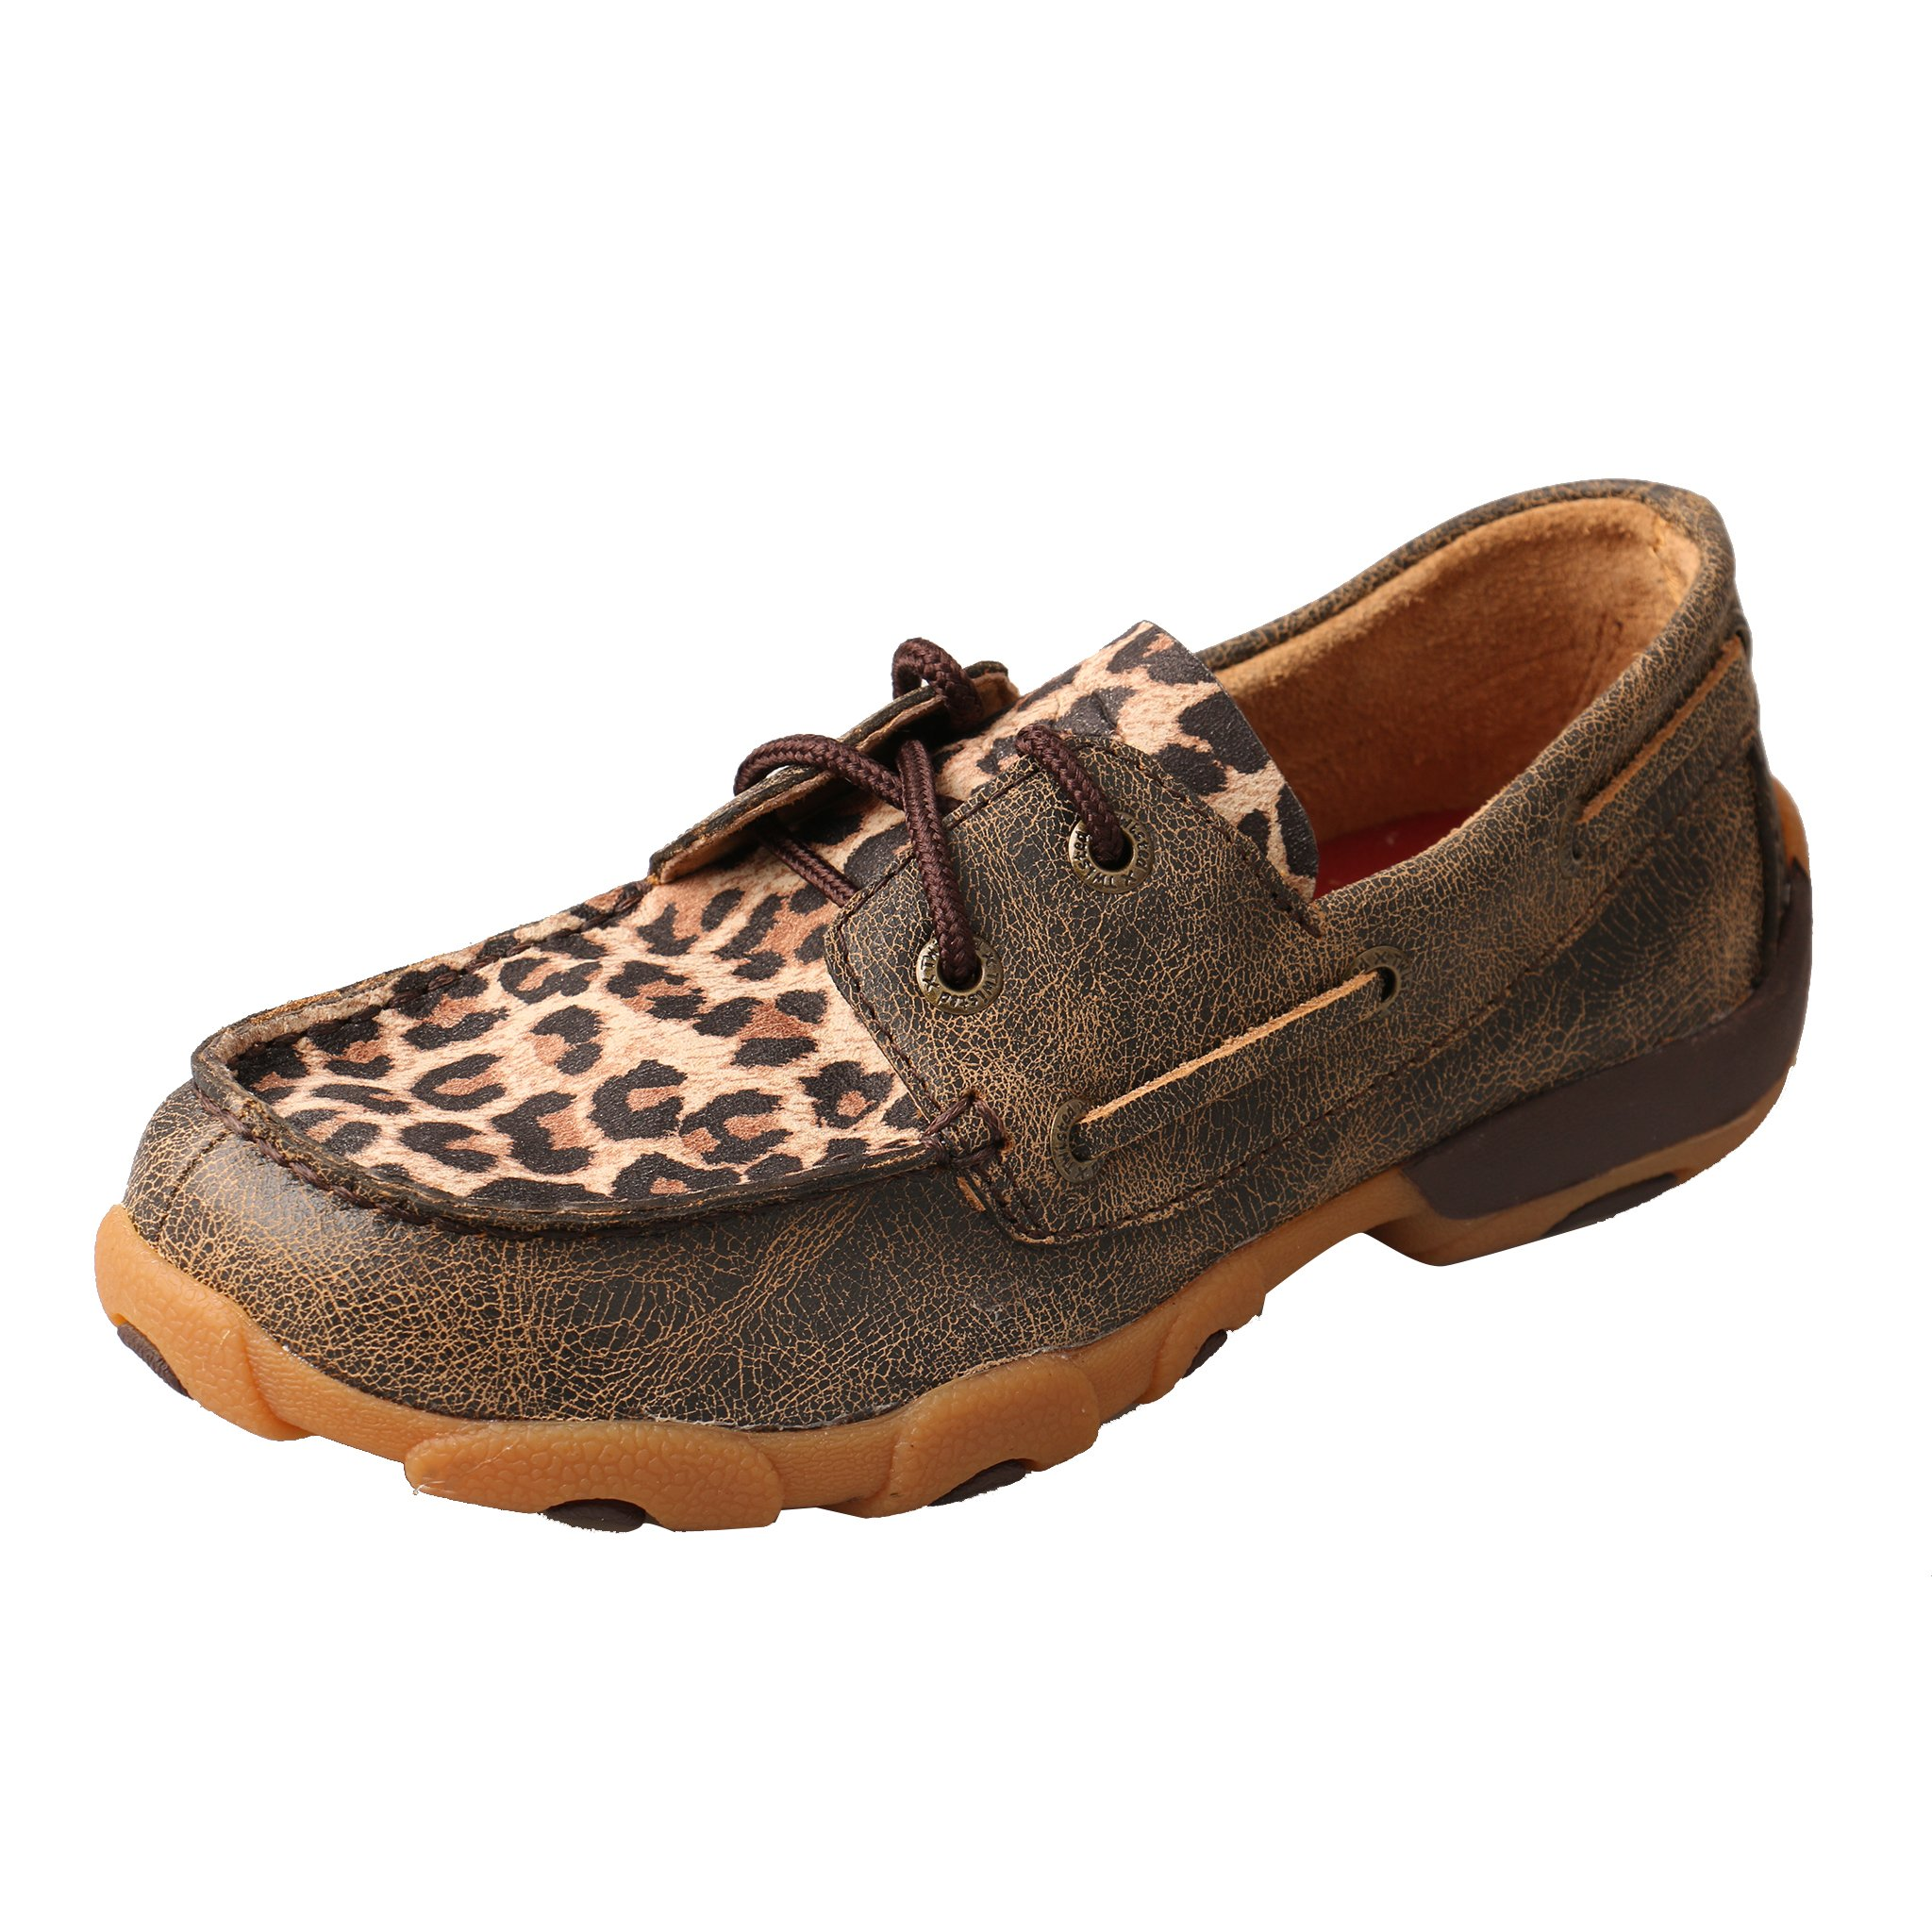 Twisted X Unisex Driving Moc Boat Shoe (Little Kid/Big Kid) Distressed/Leopard 6 M US Big Kid